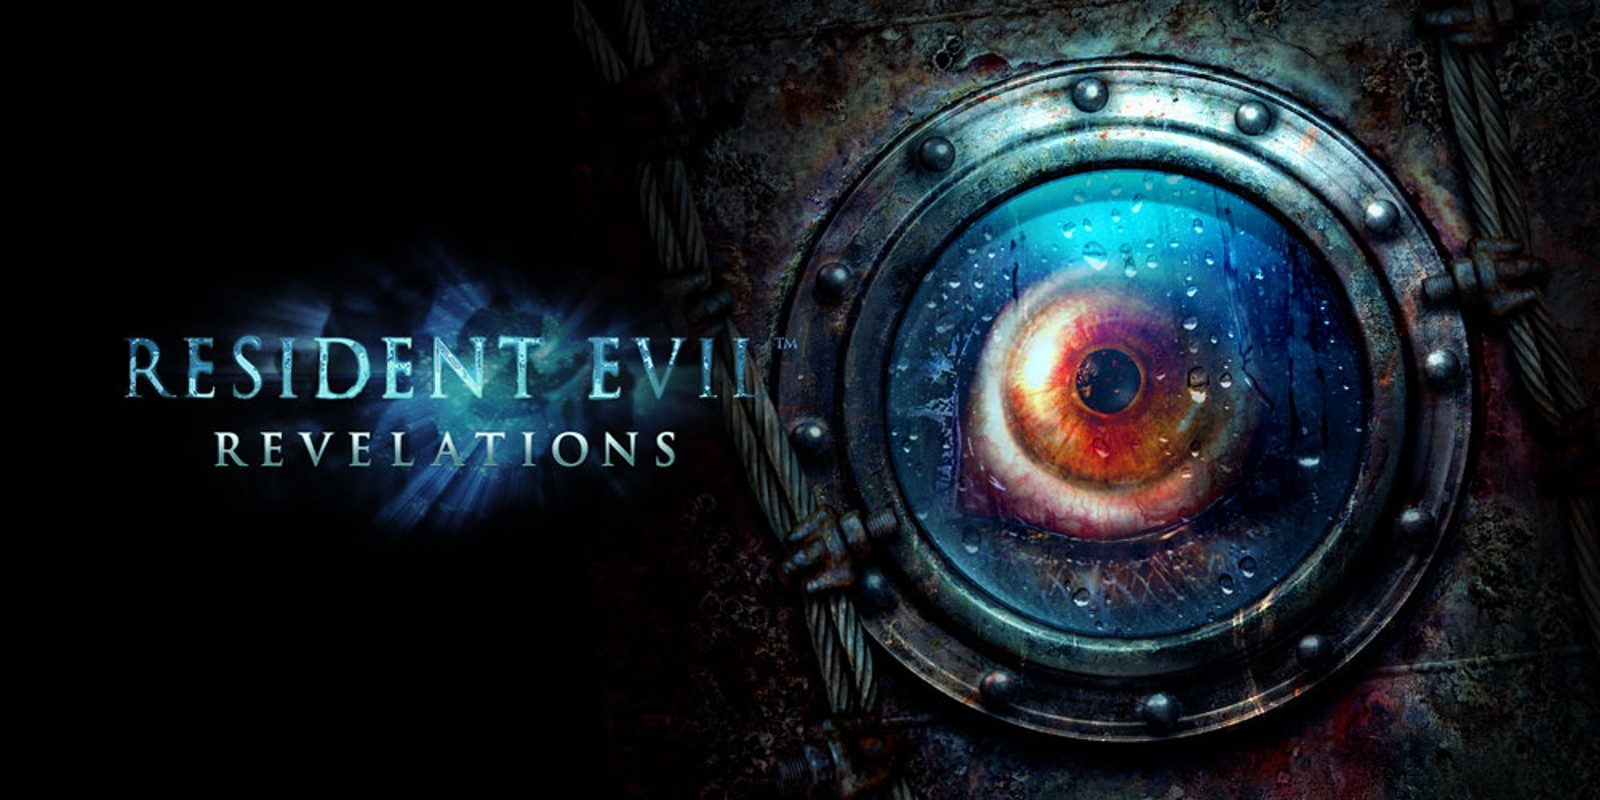 Resident Evil Revelations Collection Review SI 3DS ResidentEvilRevelations image1600w